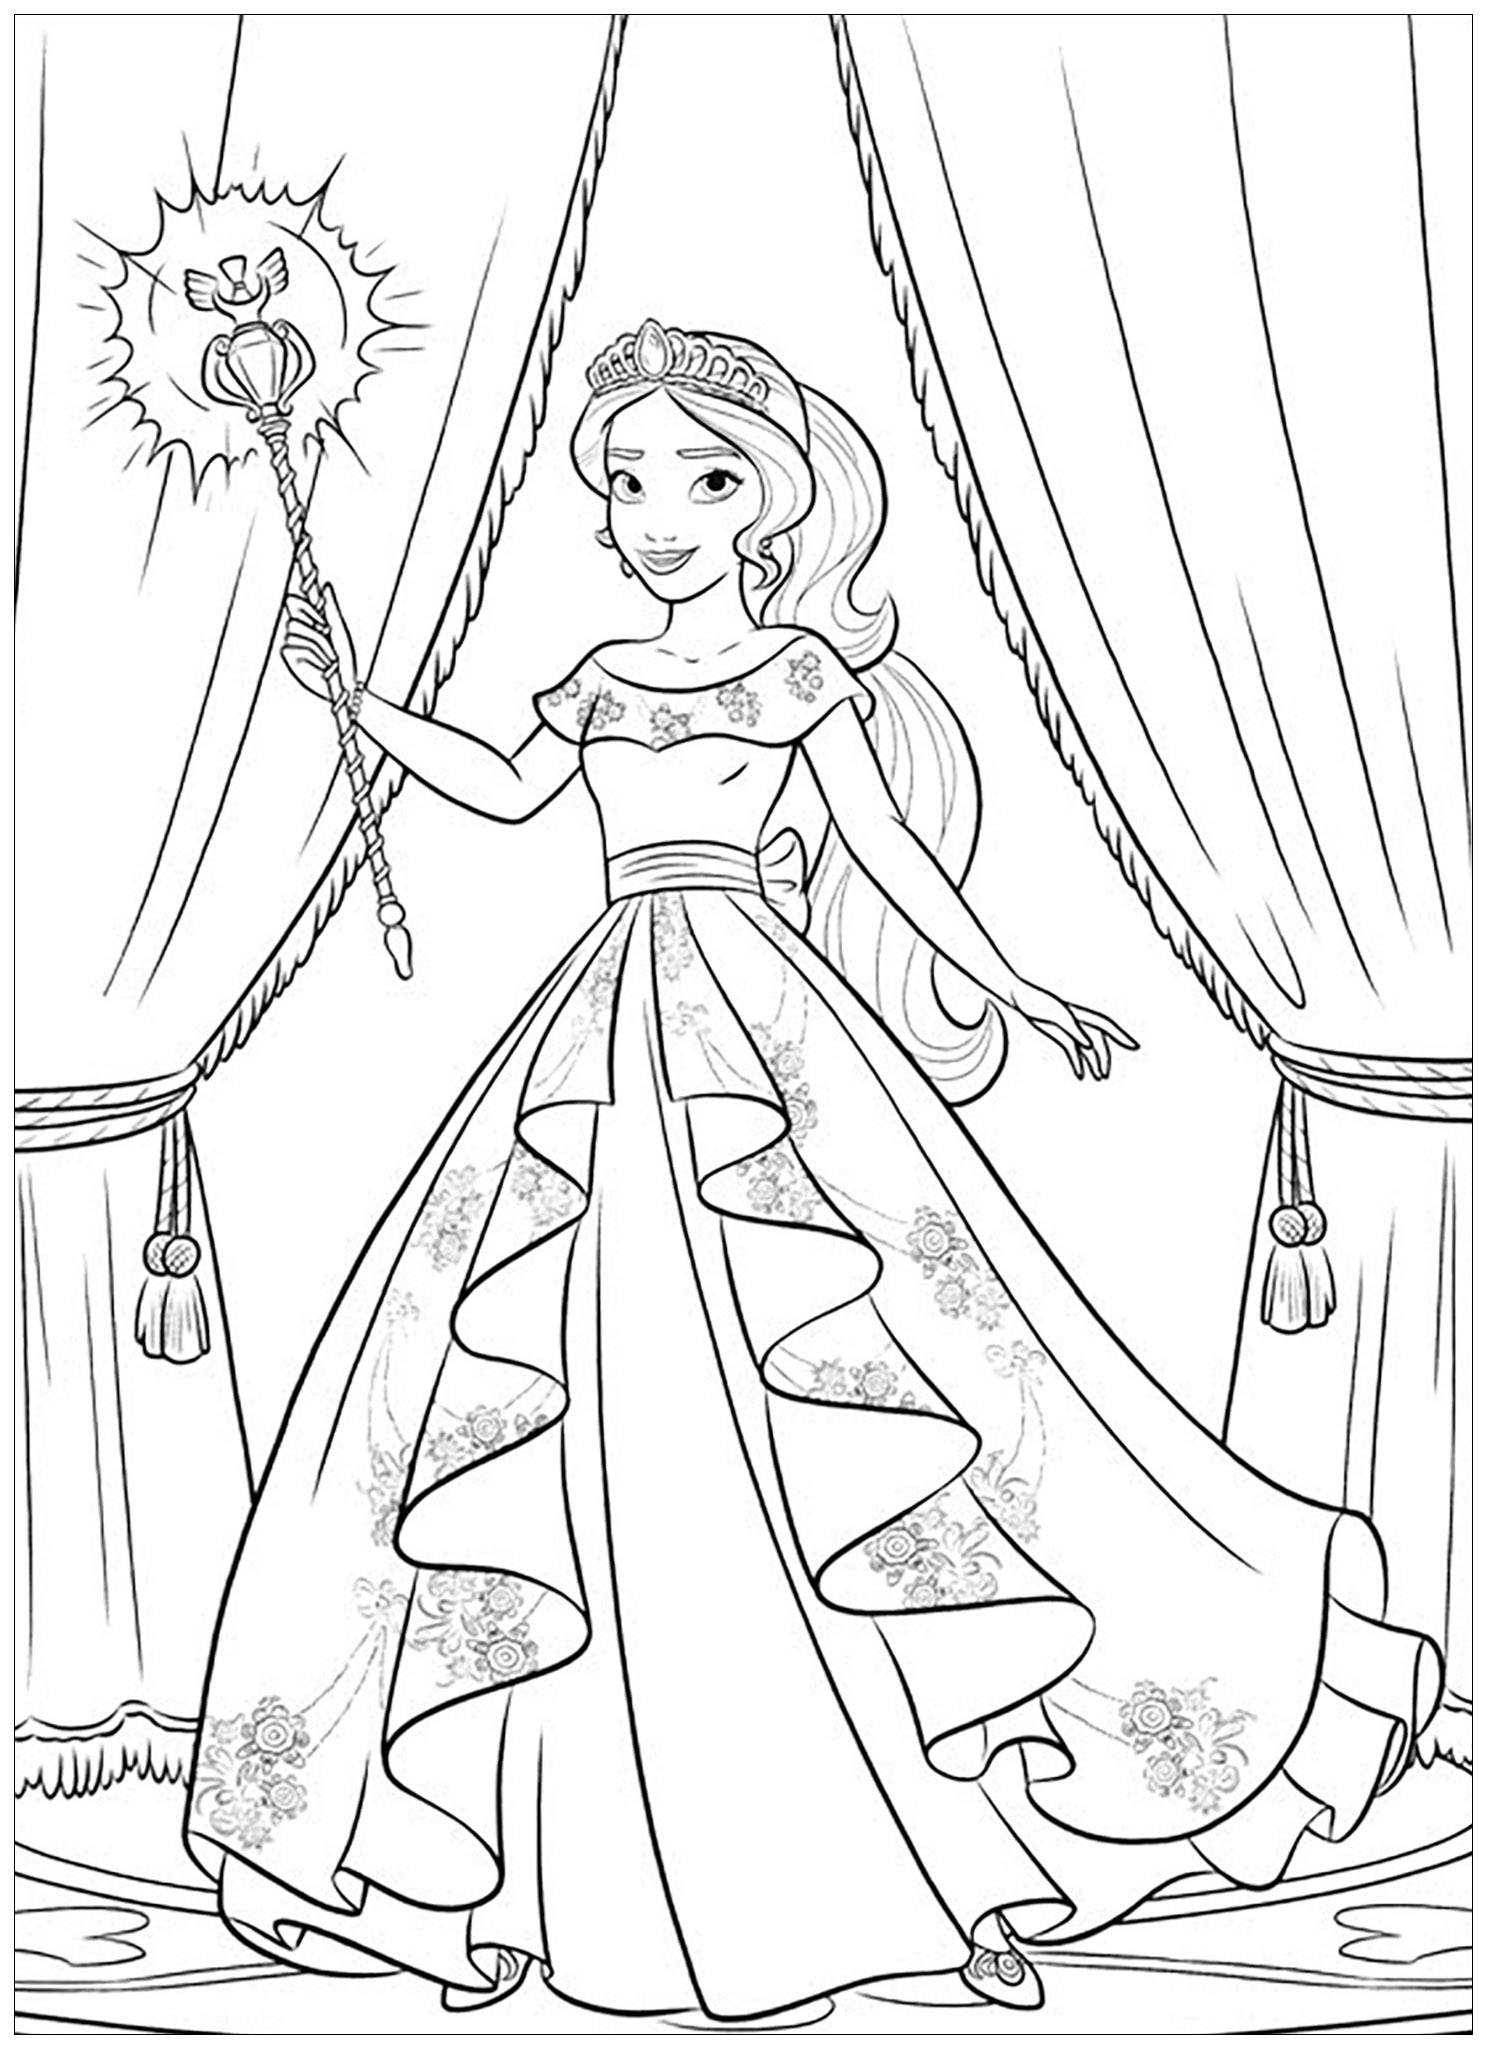 princess elena coloring pages princess elena of avalor coloring pages thousand of the pages princess coloring elena